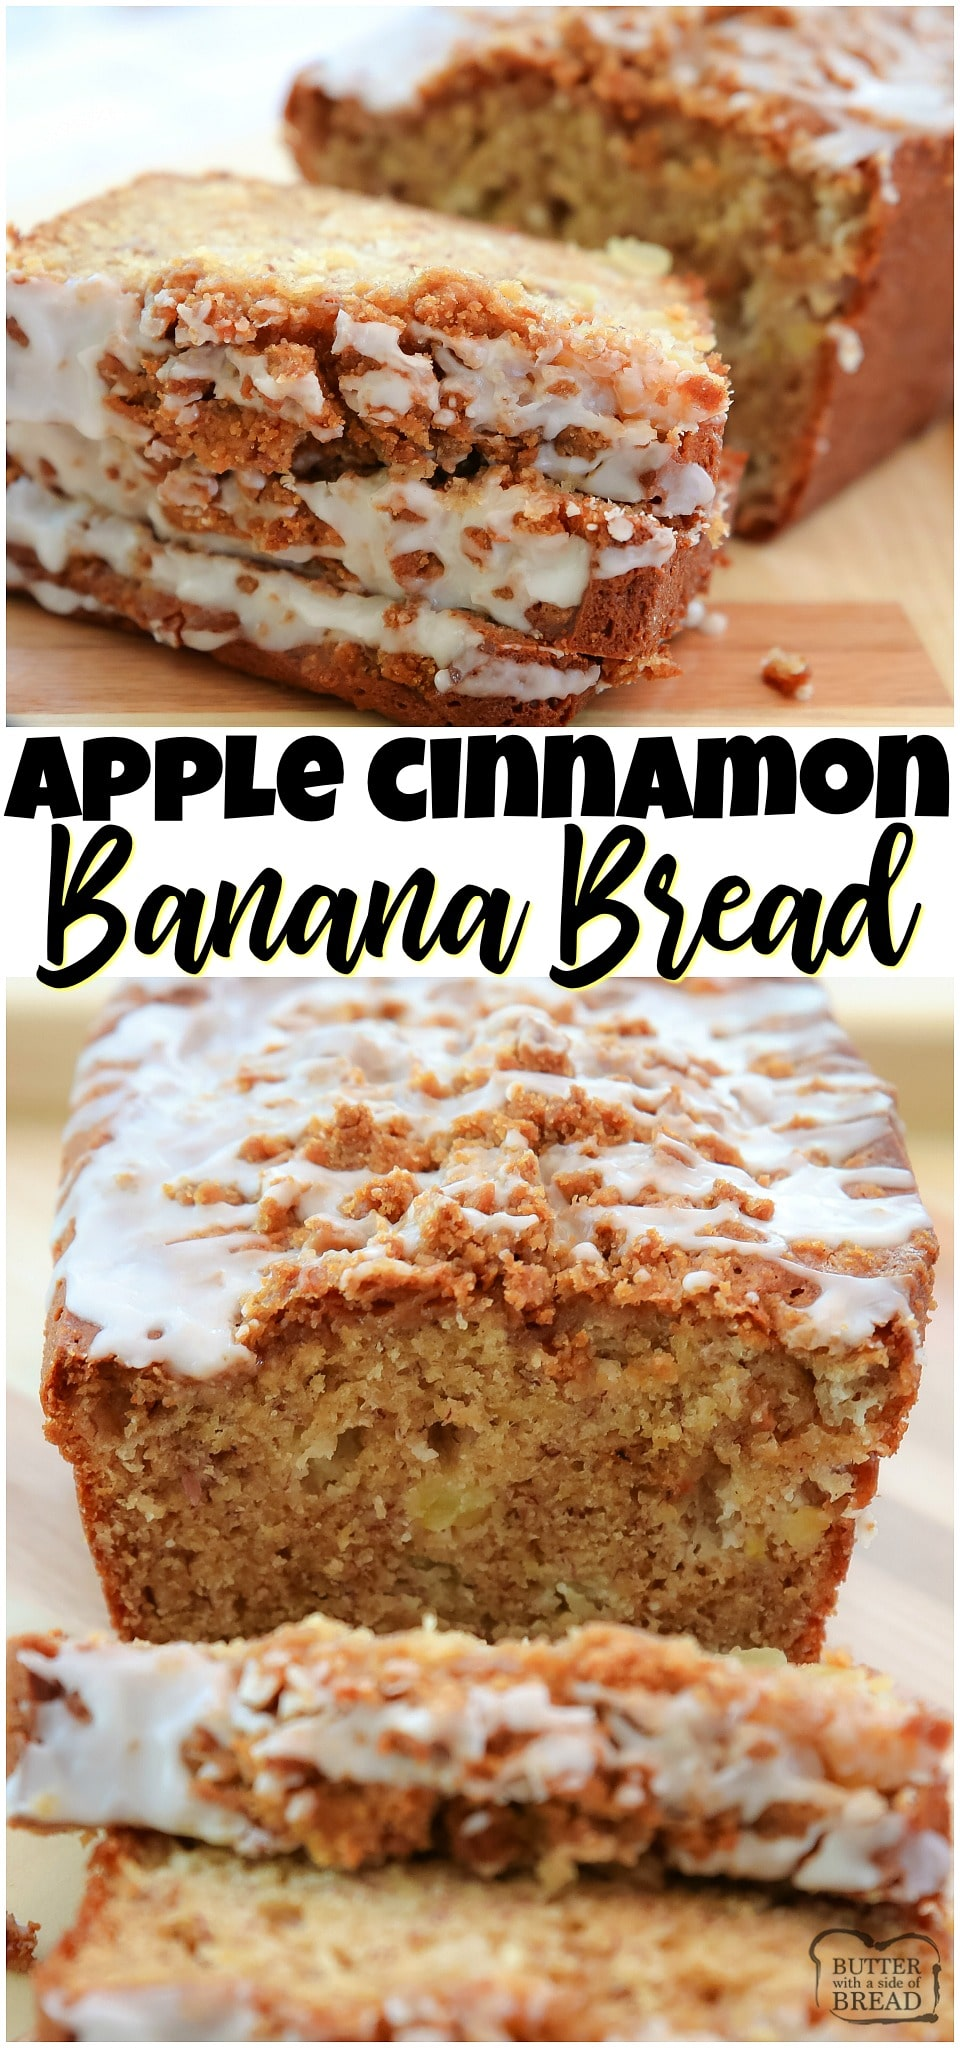 Apple Banana Bread made with ripe bananas and diced sweet apple, topped with a cinnamon streusel and drizzled with icing. Our favorite banana bread recipe ever! #bread #banana #apples #cinnamon #baking #bananabread #applebread #sweetbread #quickbread #recipe from BUTTER WITH A SIDE OF BREAD